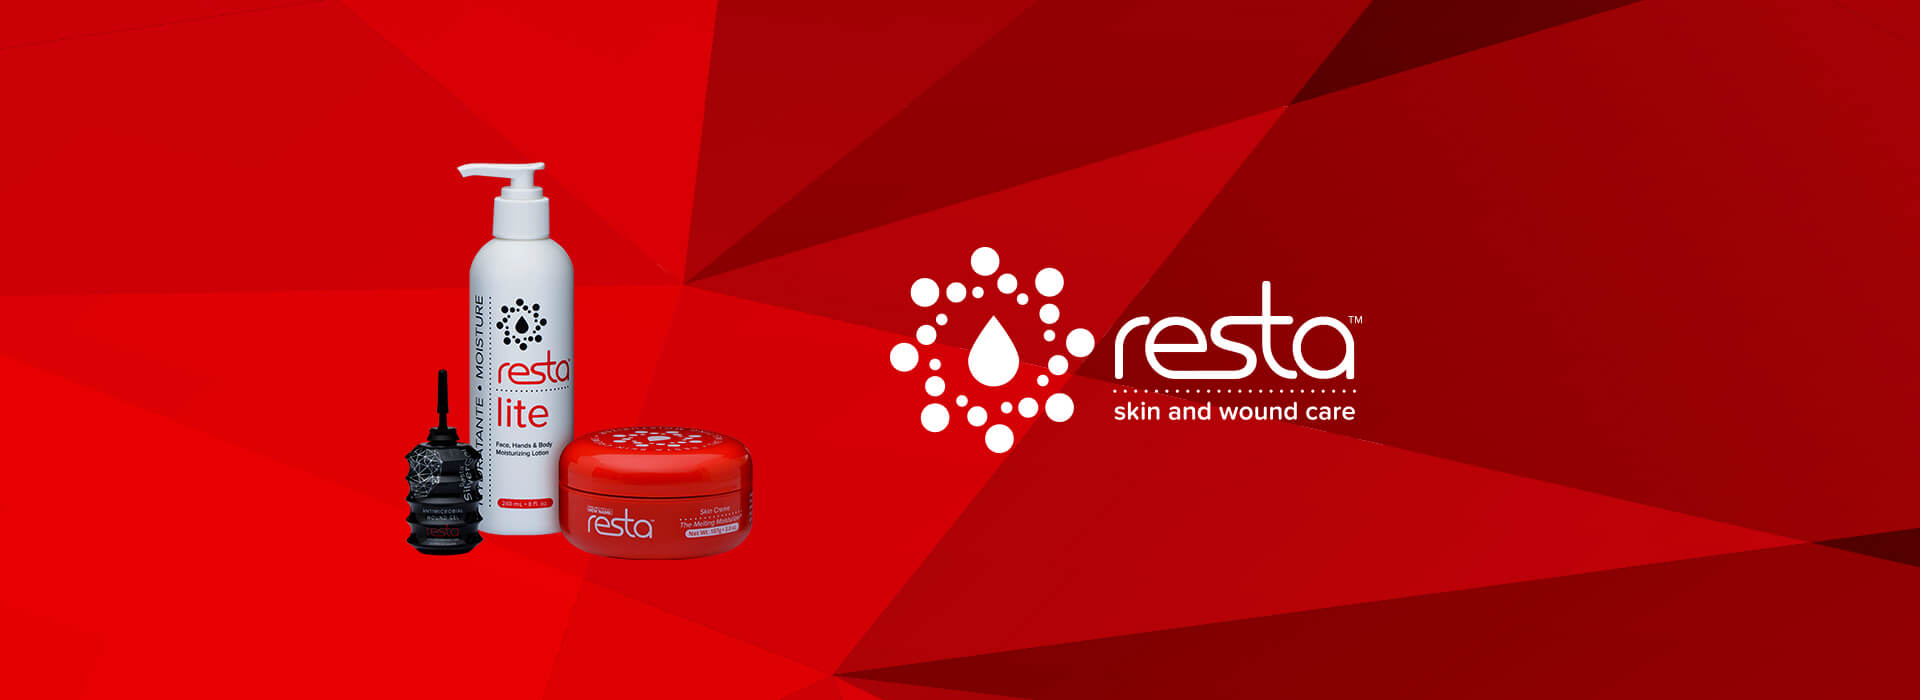 Resta products and logo.